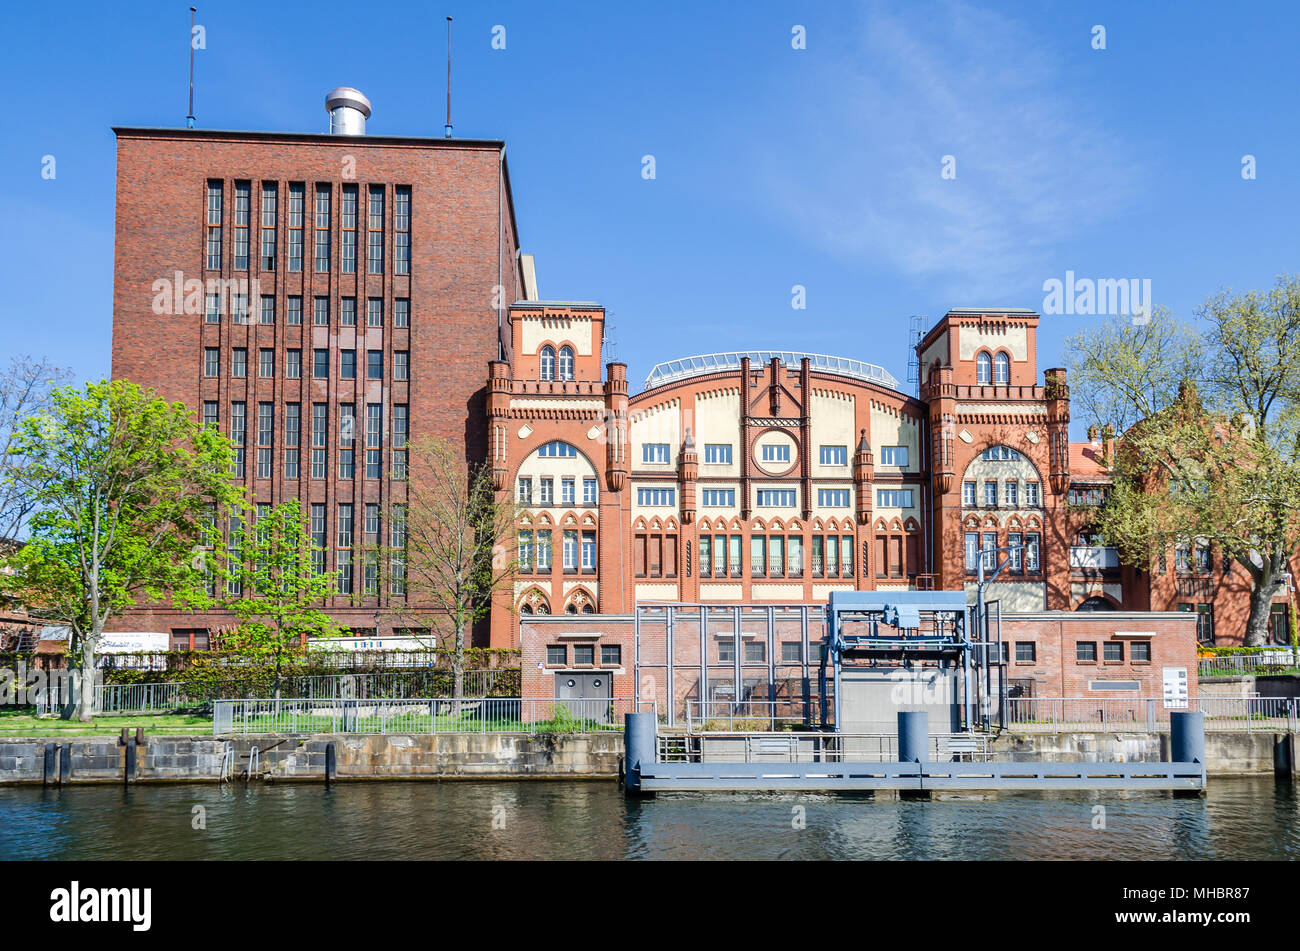 Berlin, Germany - April 22, 2018: Brick Gothic historic machine hall of the cogeneration plant Charlottenburg as seen from the river Spree - Stock Image